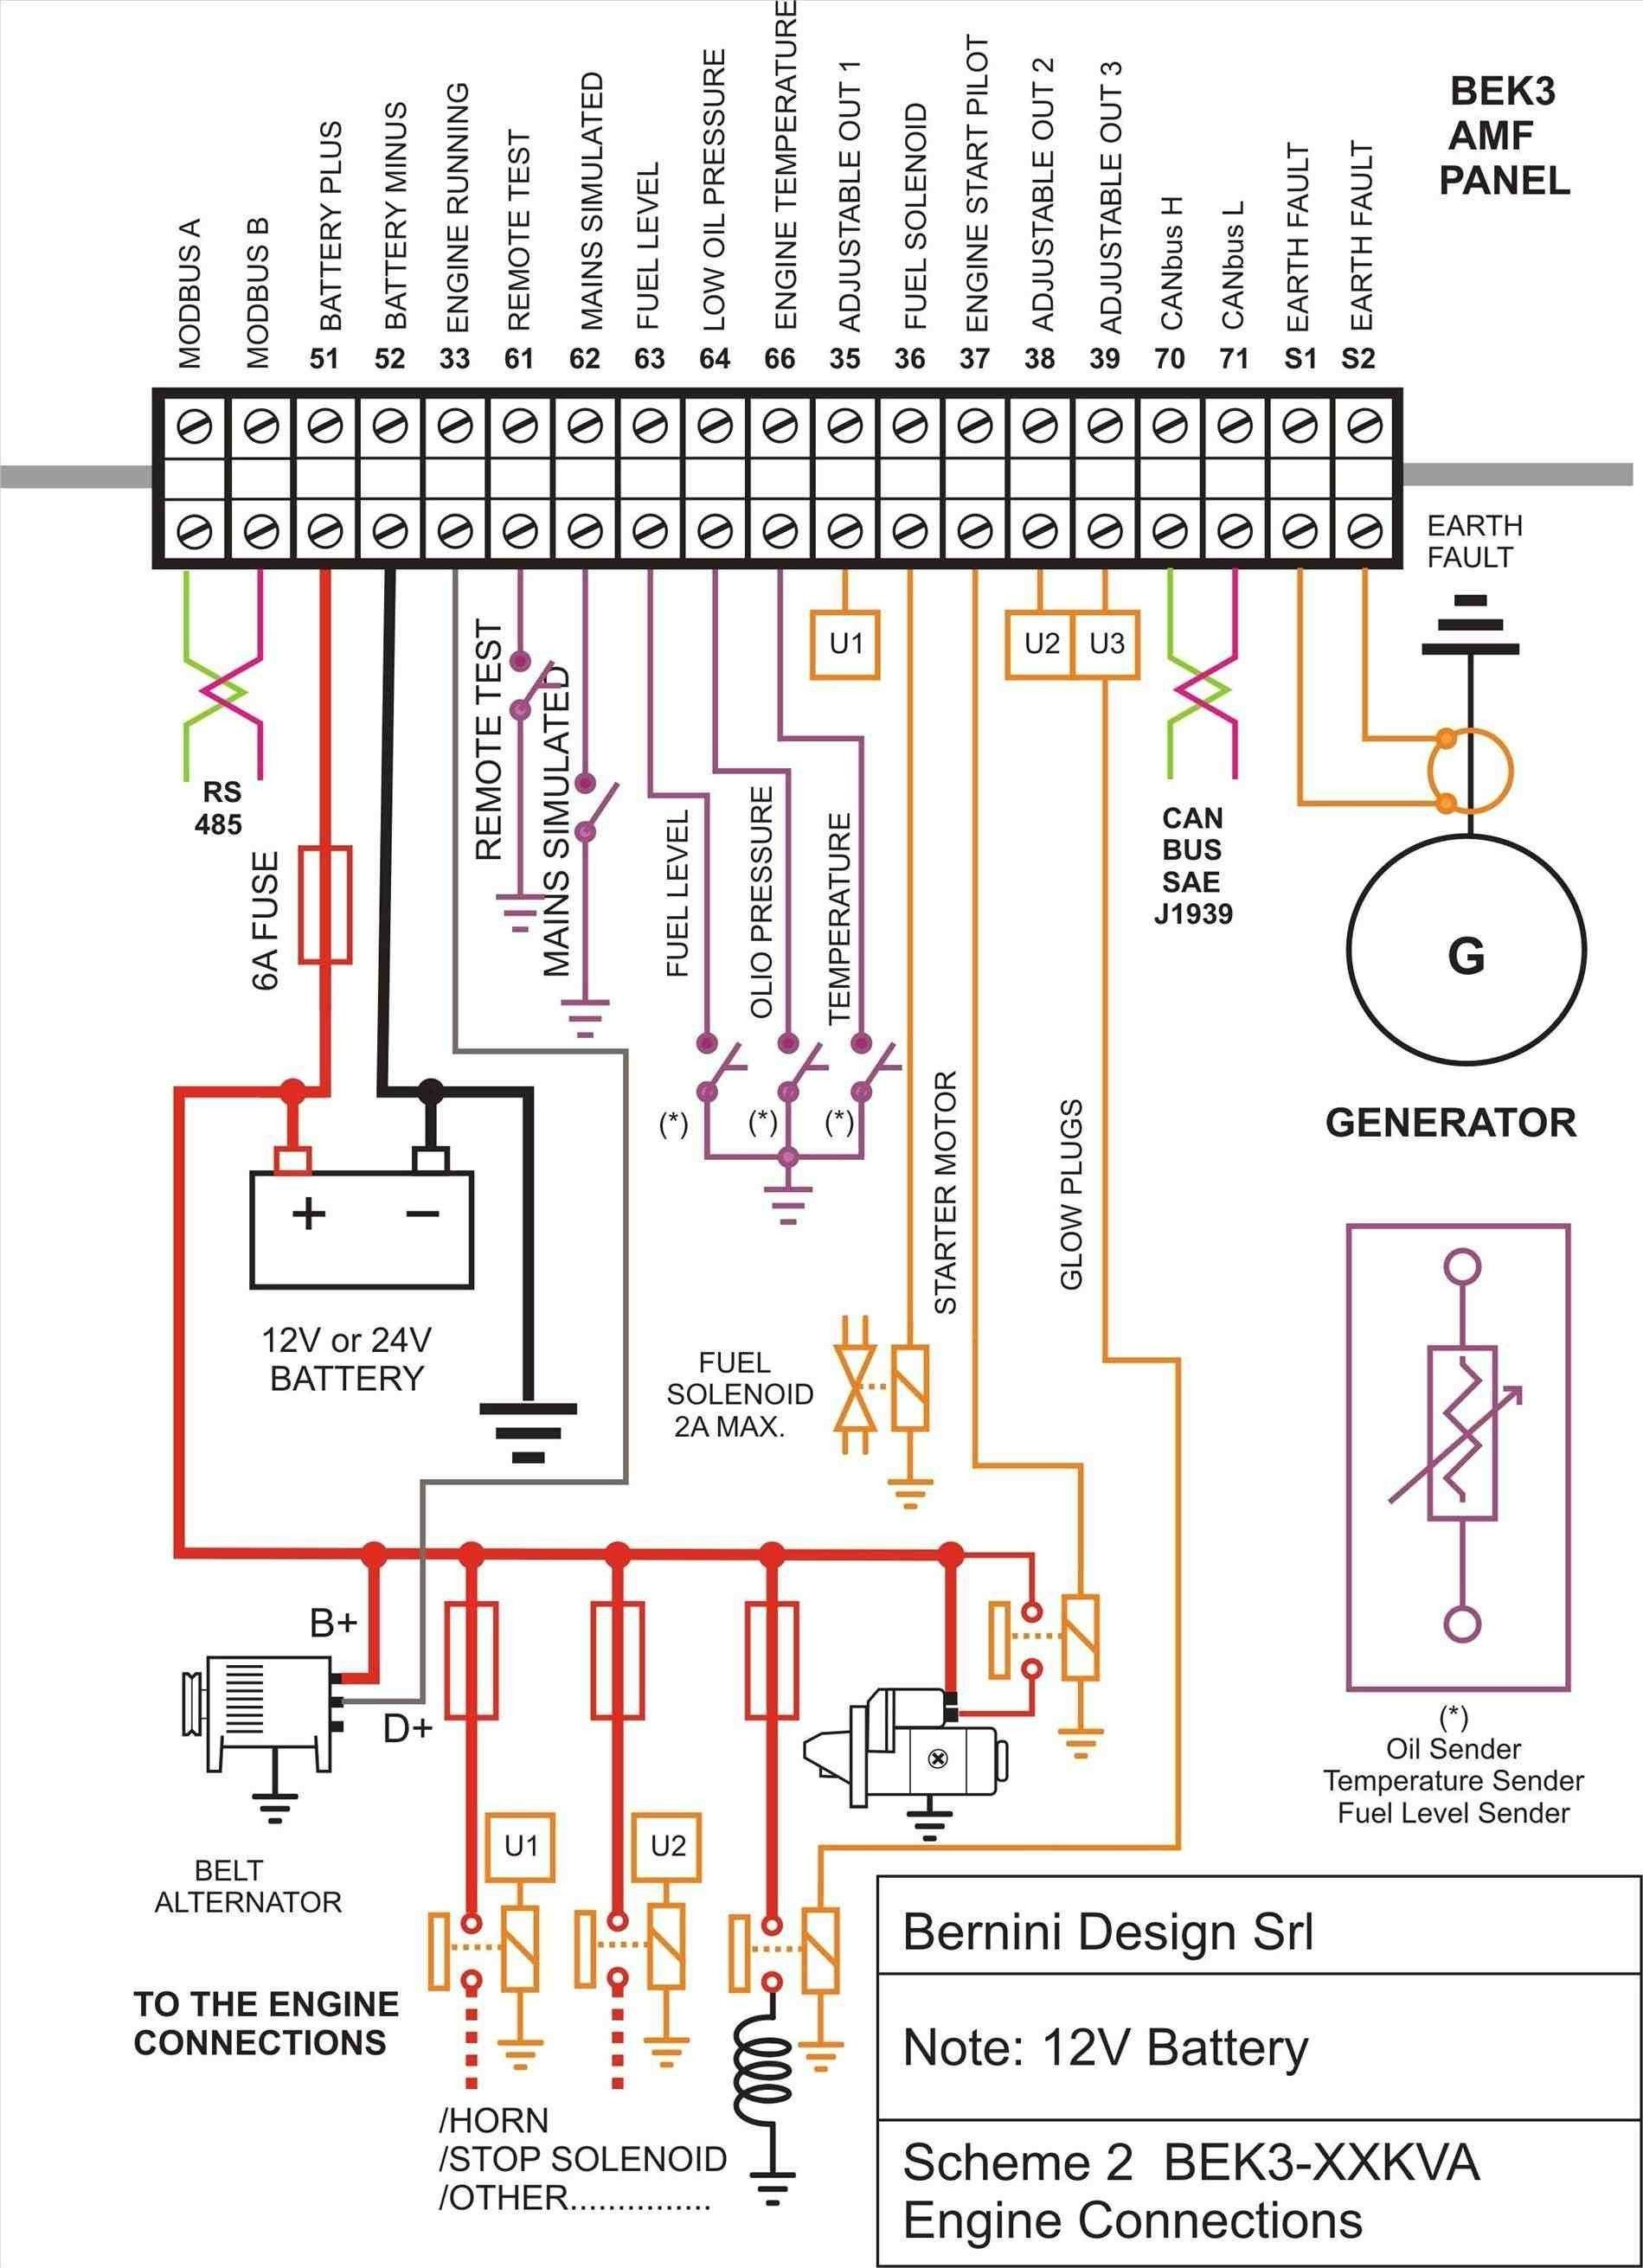 house wiring circuit diagram pdf fresh typical wiring diagram for photocell wiring diagram pdf house wiring [ 1899 x 2622 Pixel ]